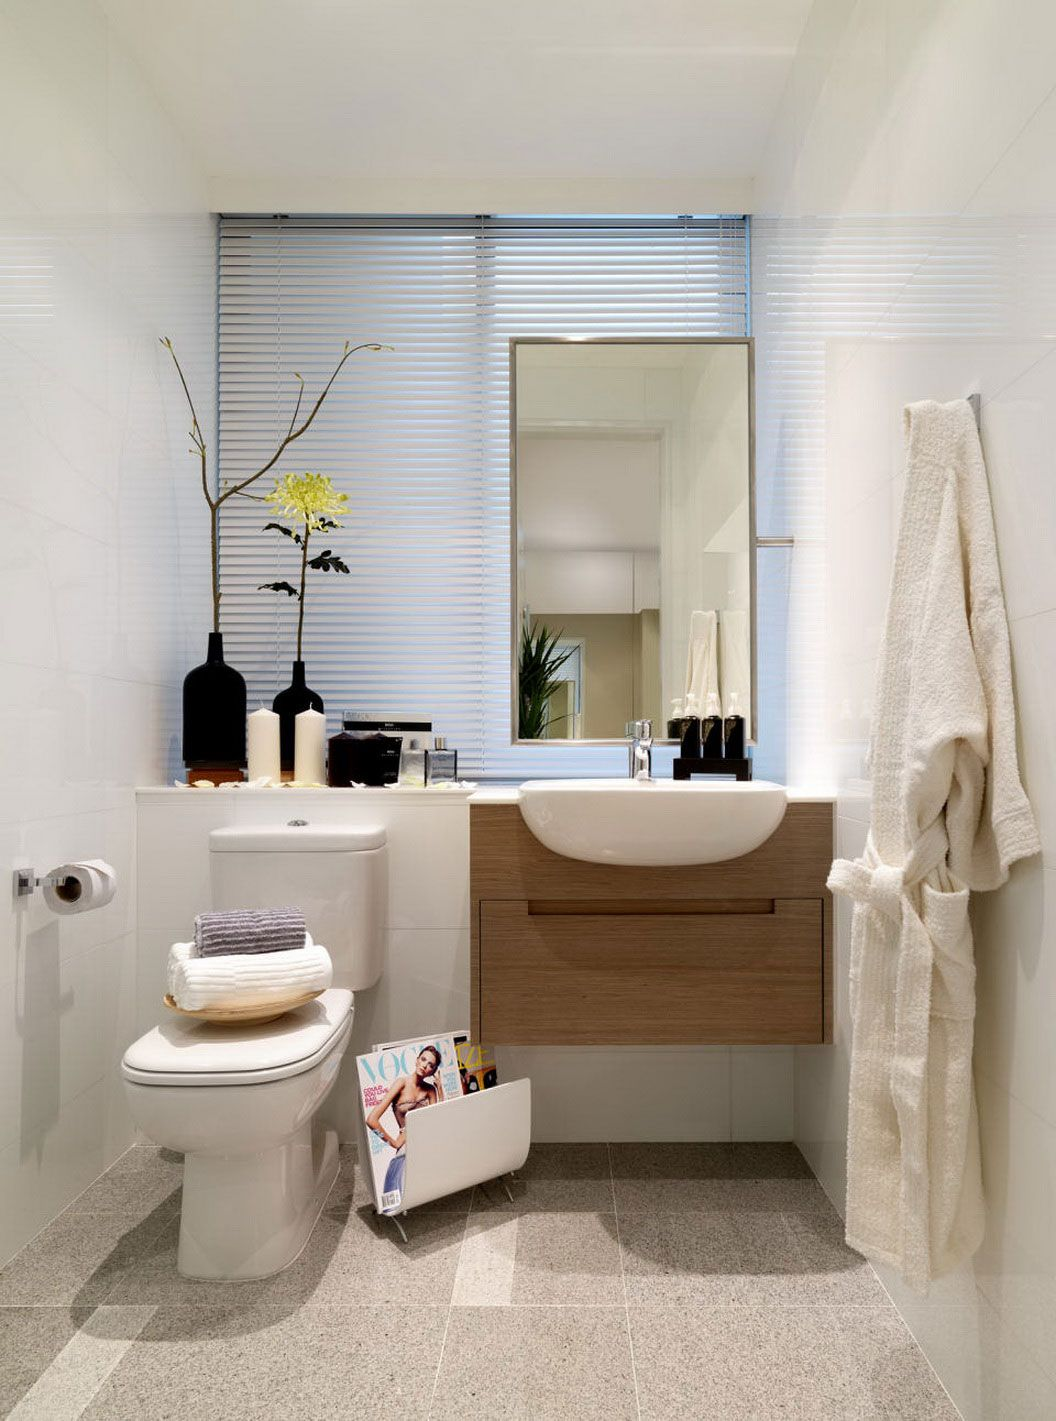 Modern Bathroom Vanities Small alluring-small-bathroom-vanities-fabulous-beautiful-modern-small